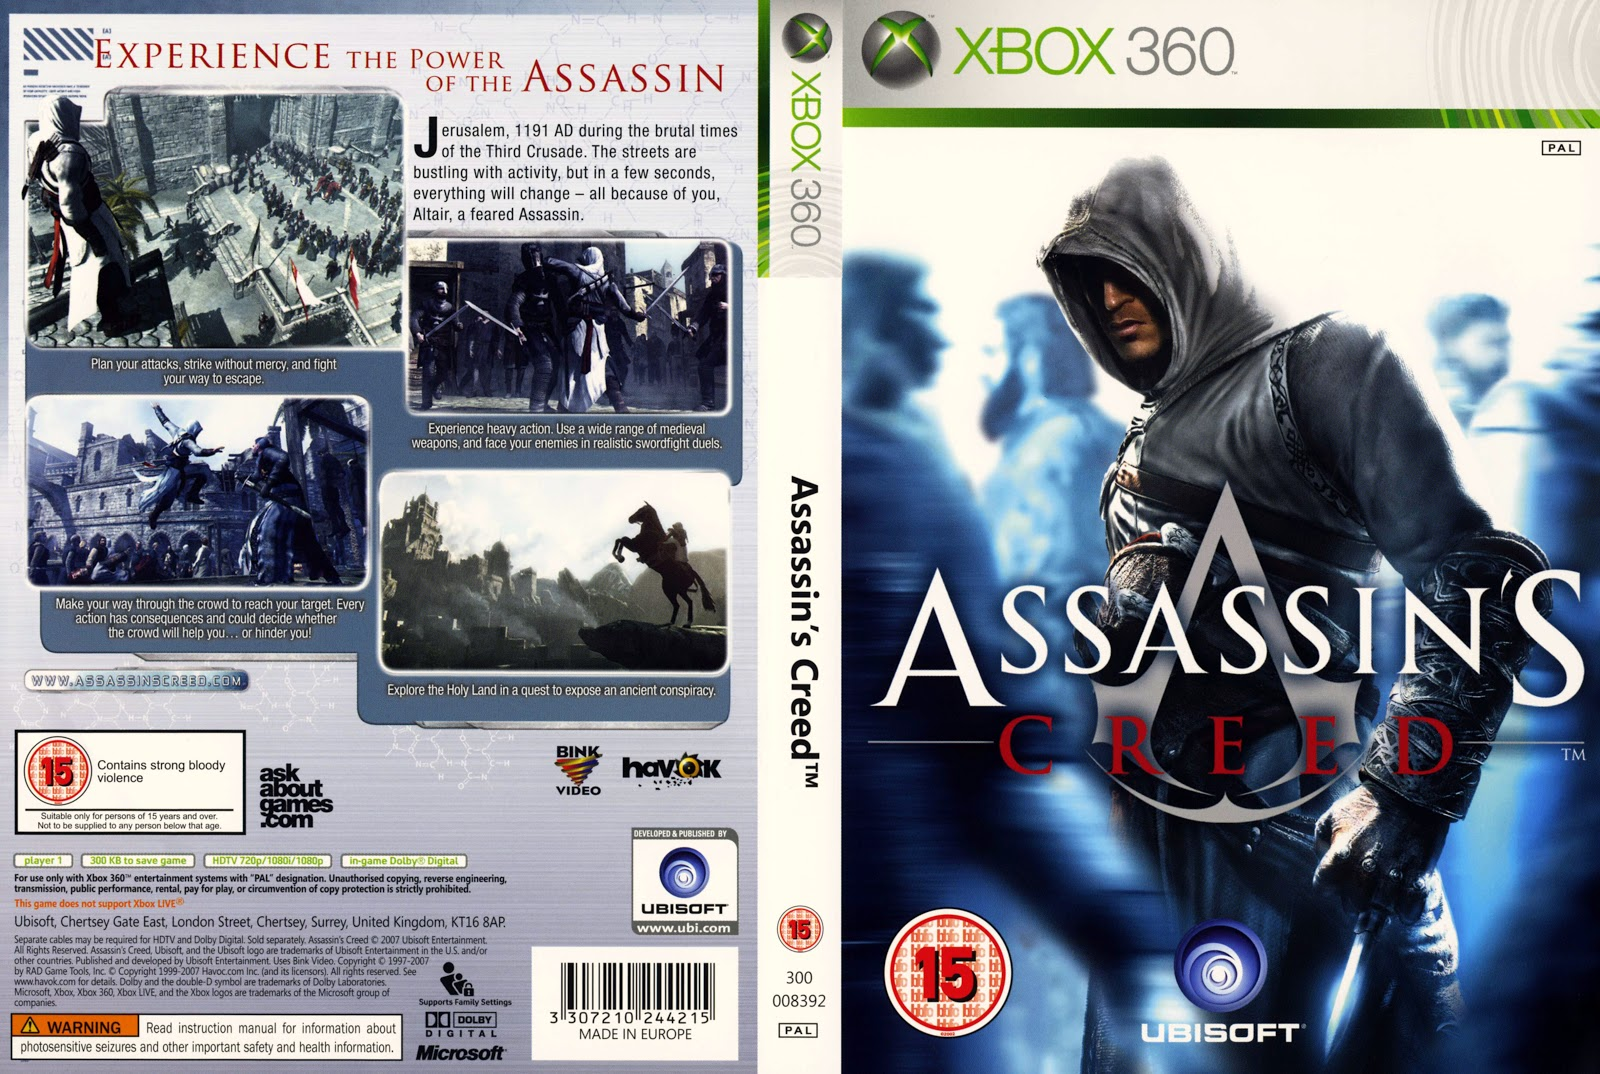 capas covers xbox 360 assassins creed capa cover scan